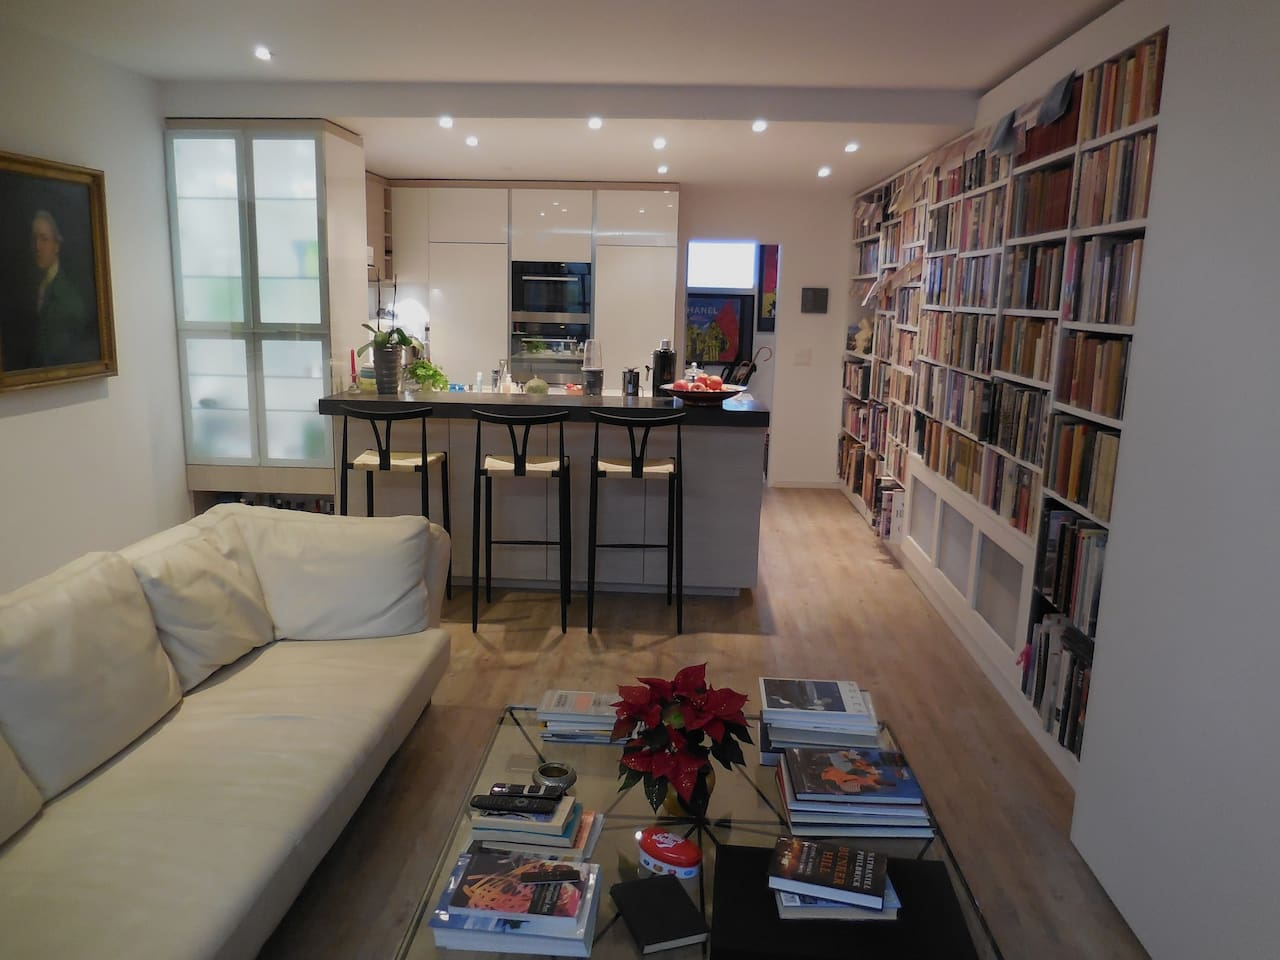 Elegantly appointed apartment that will accommodate 2 to 4 adults with its own private entrance and parking area. Shared pool, private sauna, terrace and free WiFi.